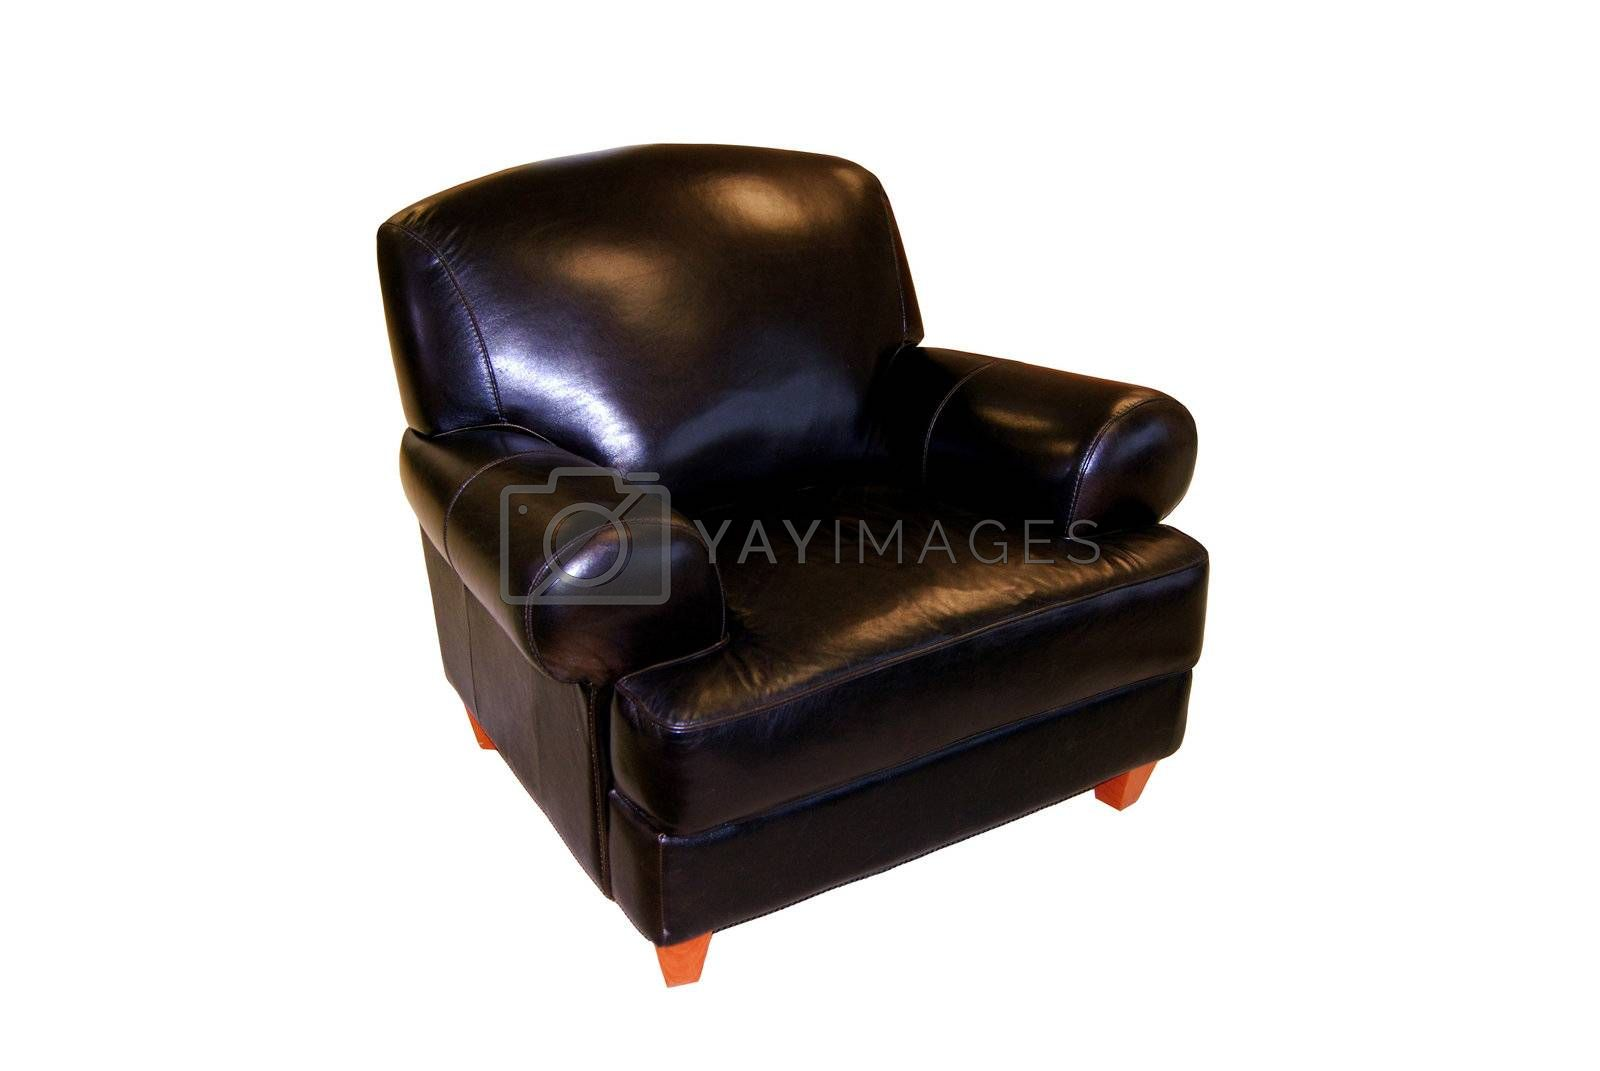 black leather chair by graficallyminded